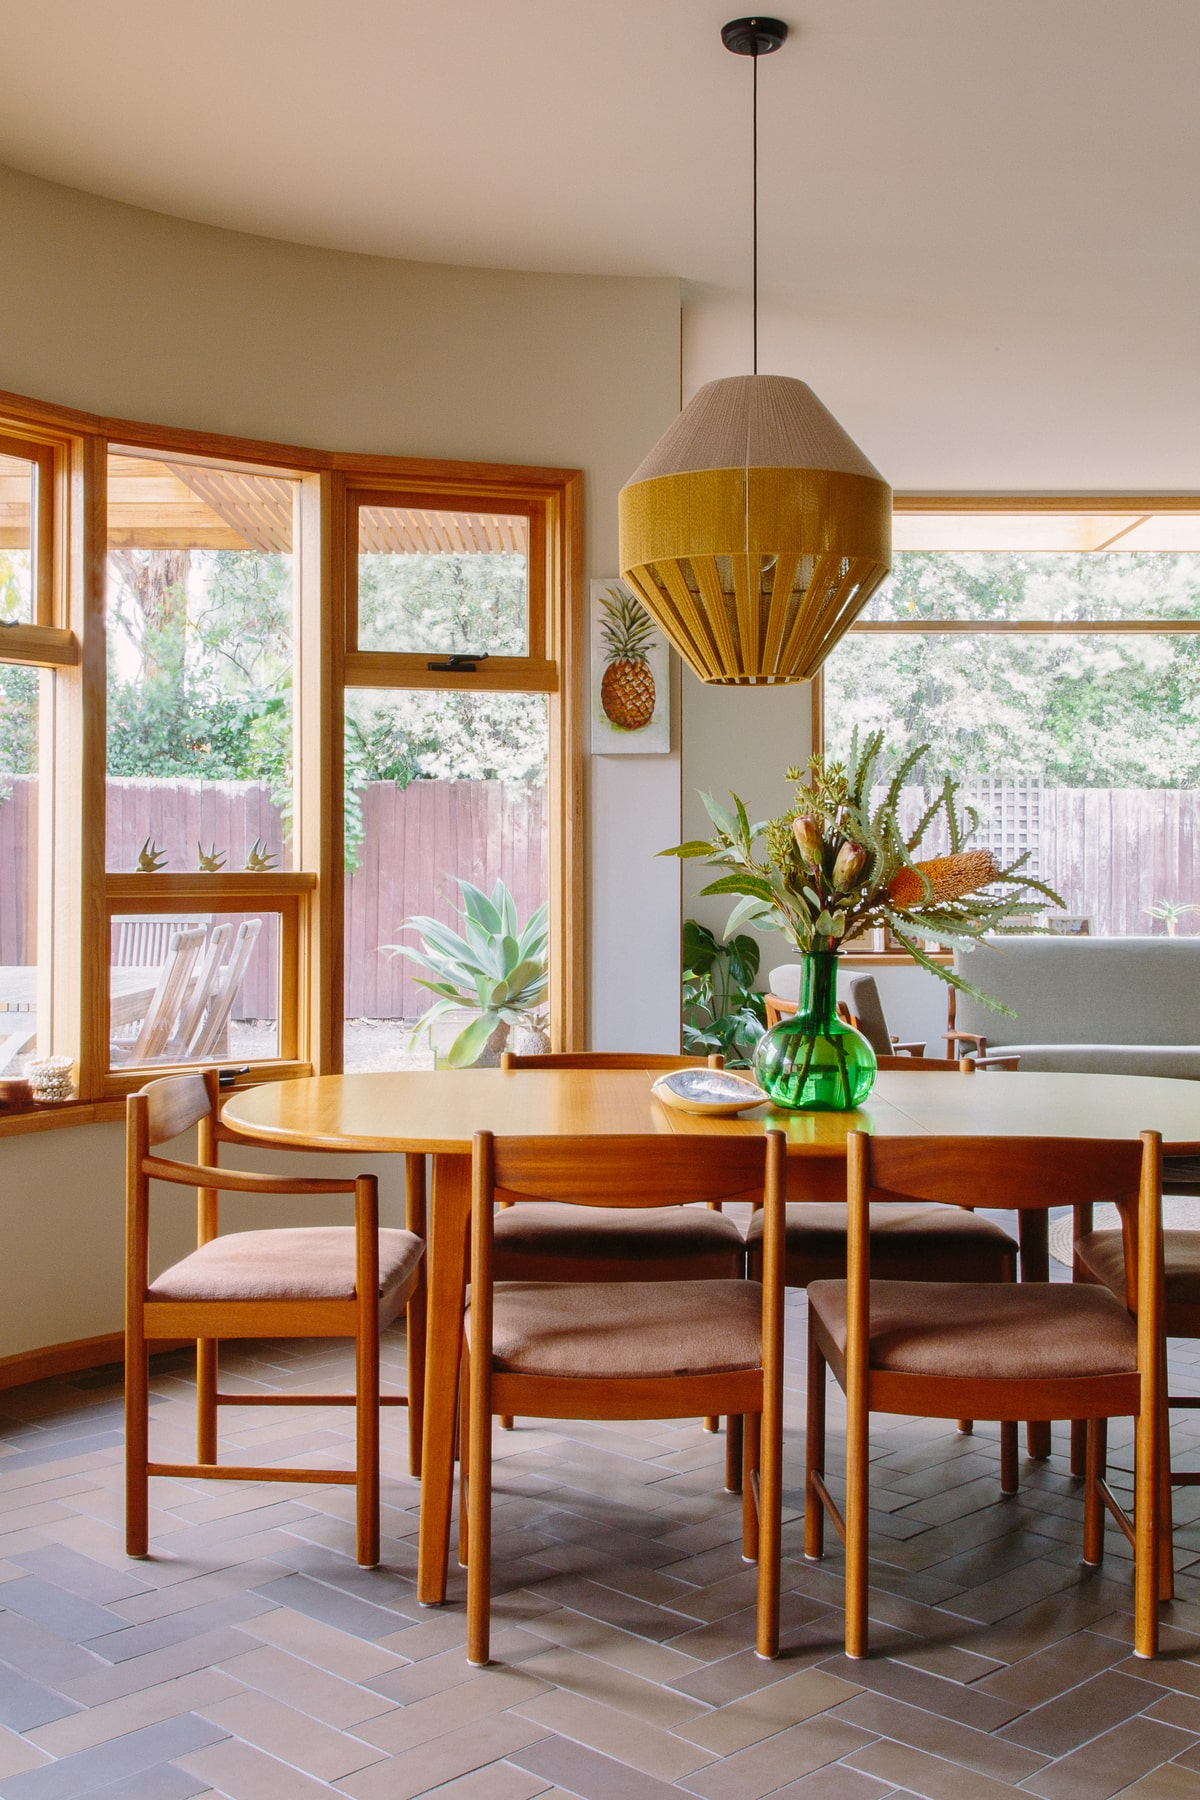 Yarravillia Project By Brave New Eco Local Australian Interior Design And Architecture Yarraville,melbourne Image 10